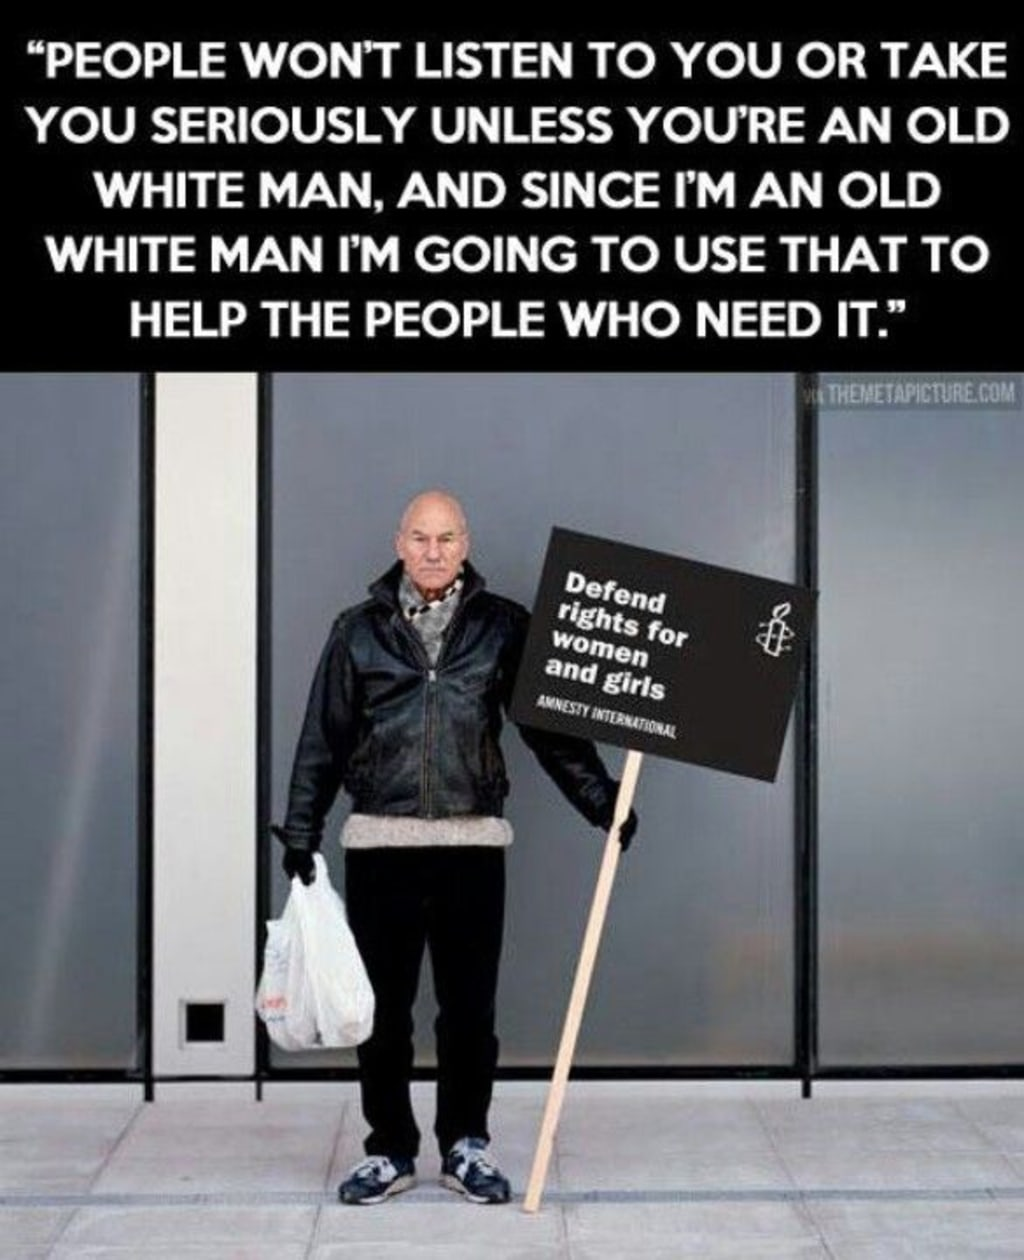 Sir Patrick Stewart Going For United States Citizenship?